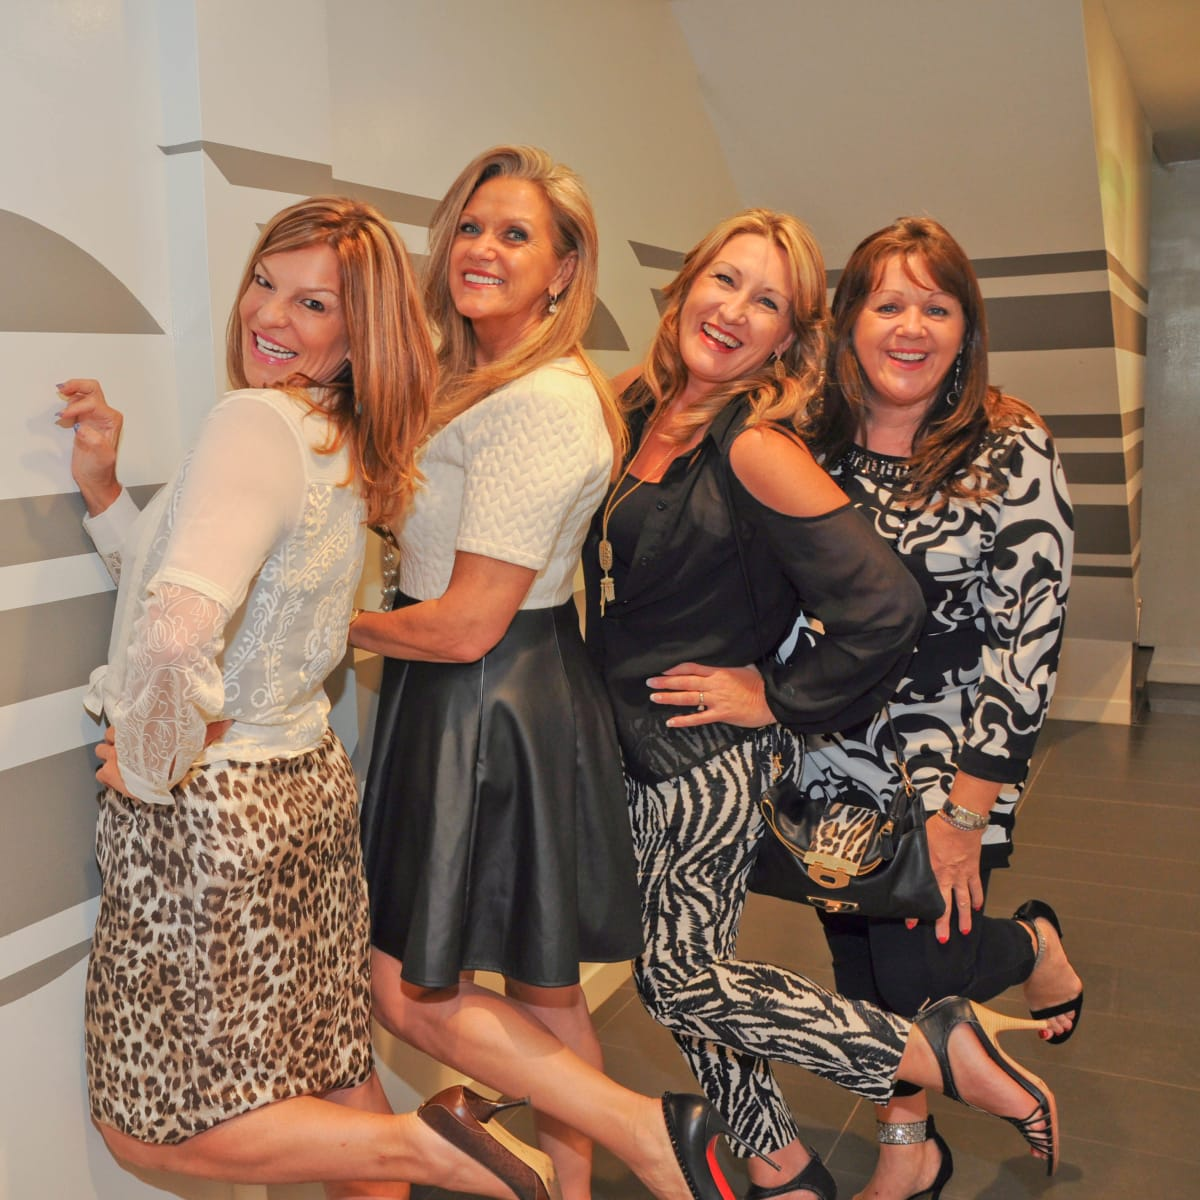 News, Shelby, Ryde for a Cause, Sept. 2015 Lexie Houghtaling, Paige Houghtaling Lindy Tennet, Rhona Aksoy, Rozi Tumbull, Lauren Ramsay